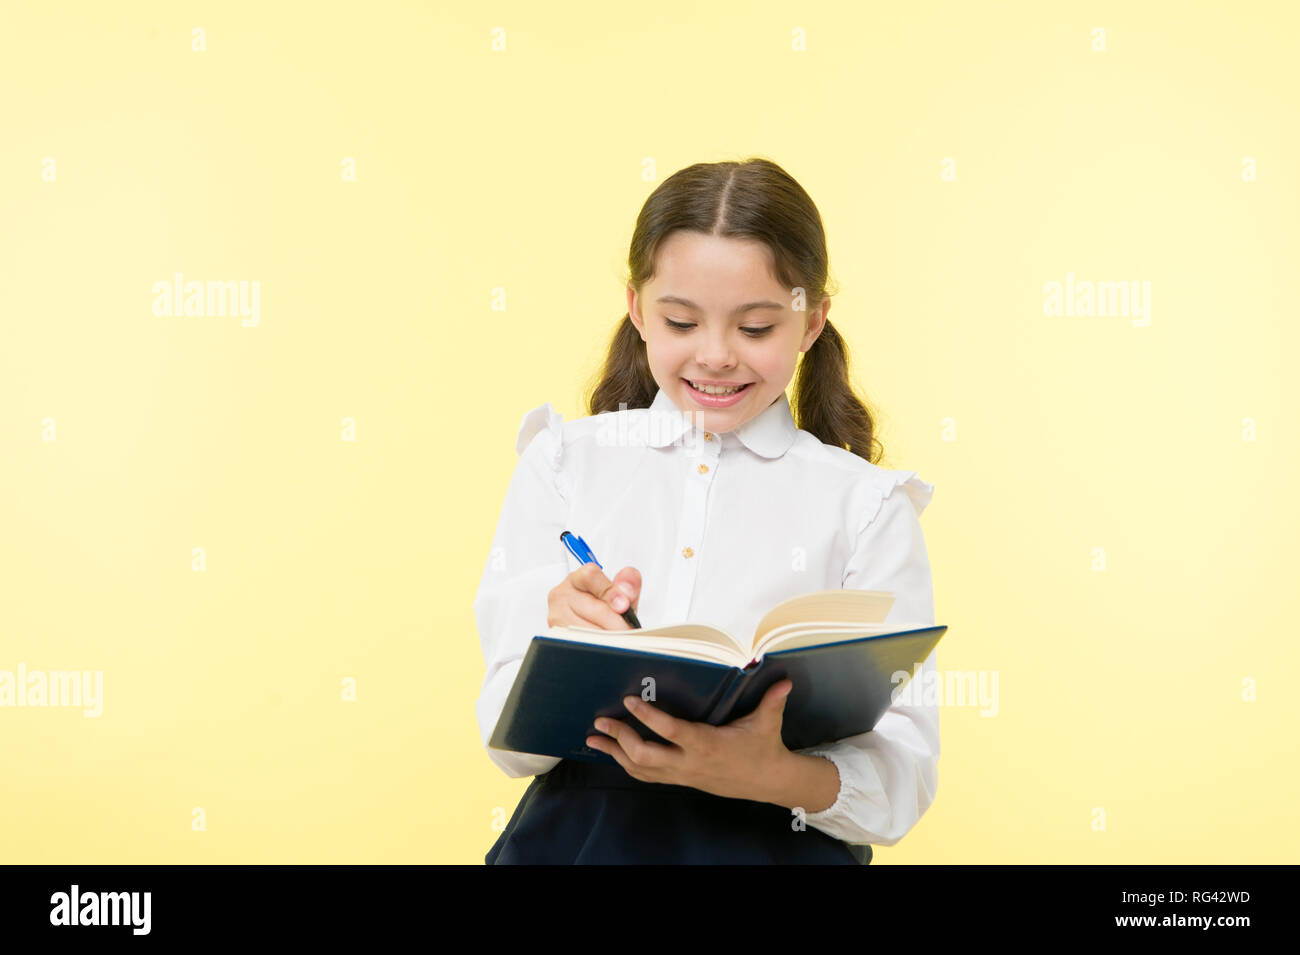 Making notes. Child school uniform kid doing homework. Child girl school uniform clothes hold book and pen. Girl cute write down idea notes. Notes to remember. Write essay or notes. Personal schedule. - Stock Image